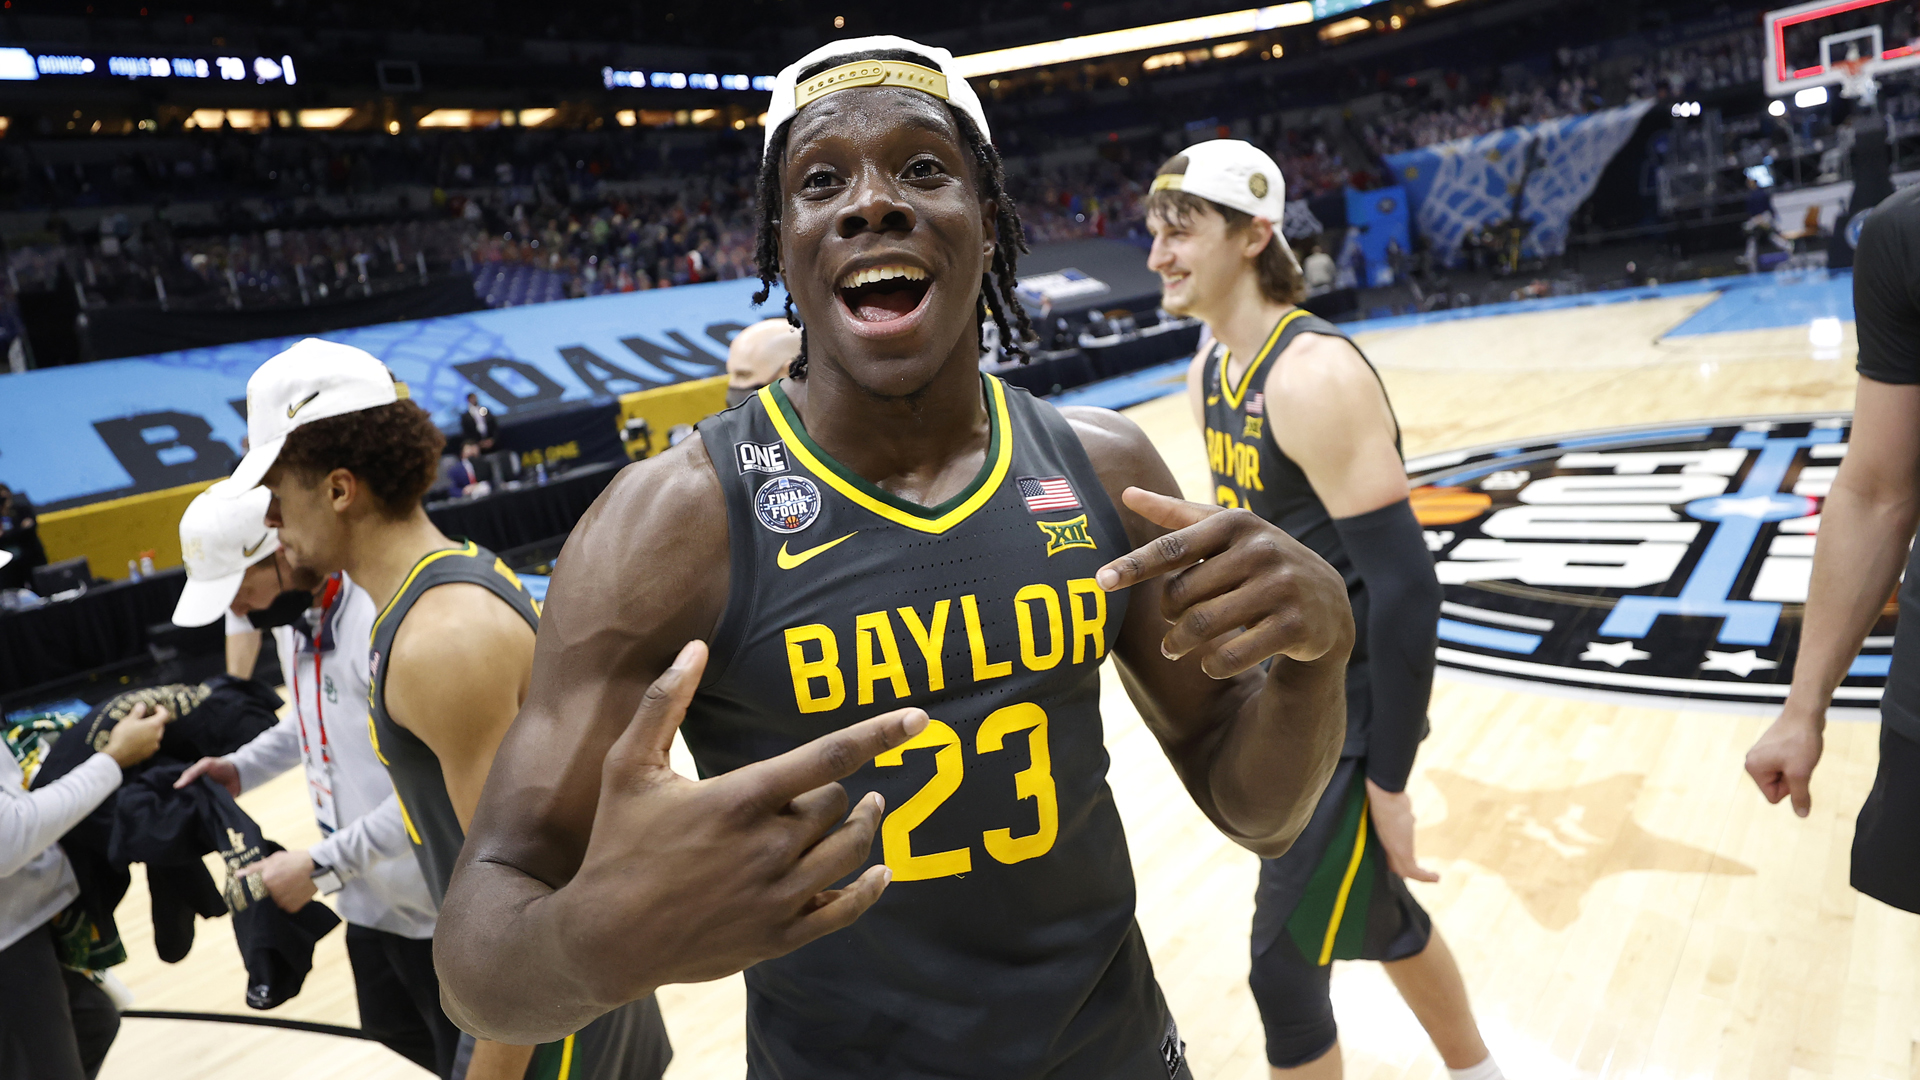 Tchatchoua's interesting trek to a national title at Baylor